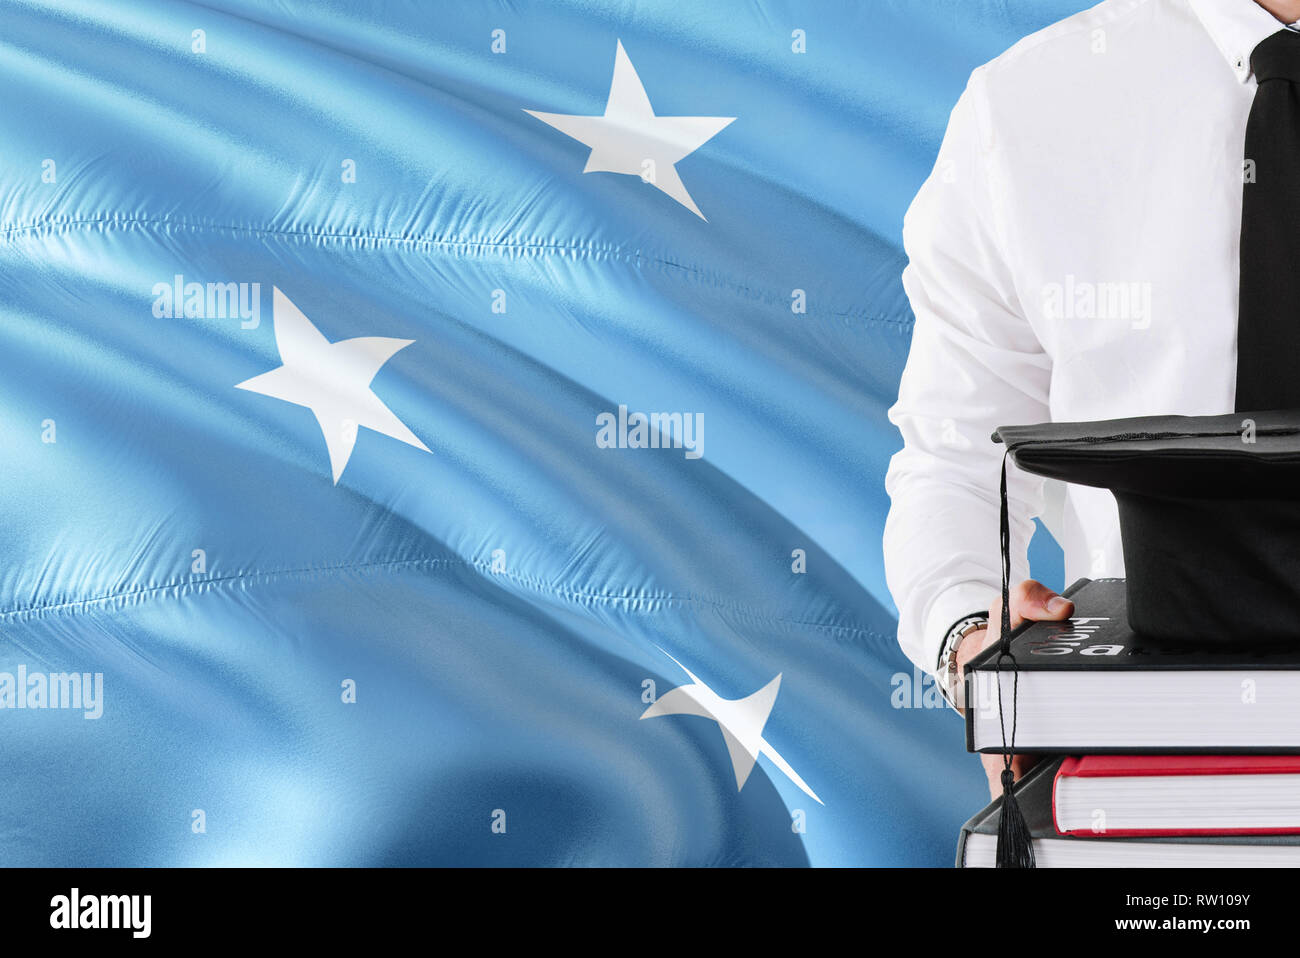 Successful Micronesian student education concept. Holding books and graduation cap over Micronesia flag background. - Stock Image